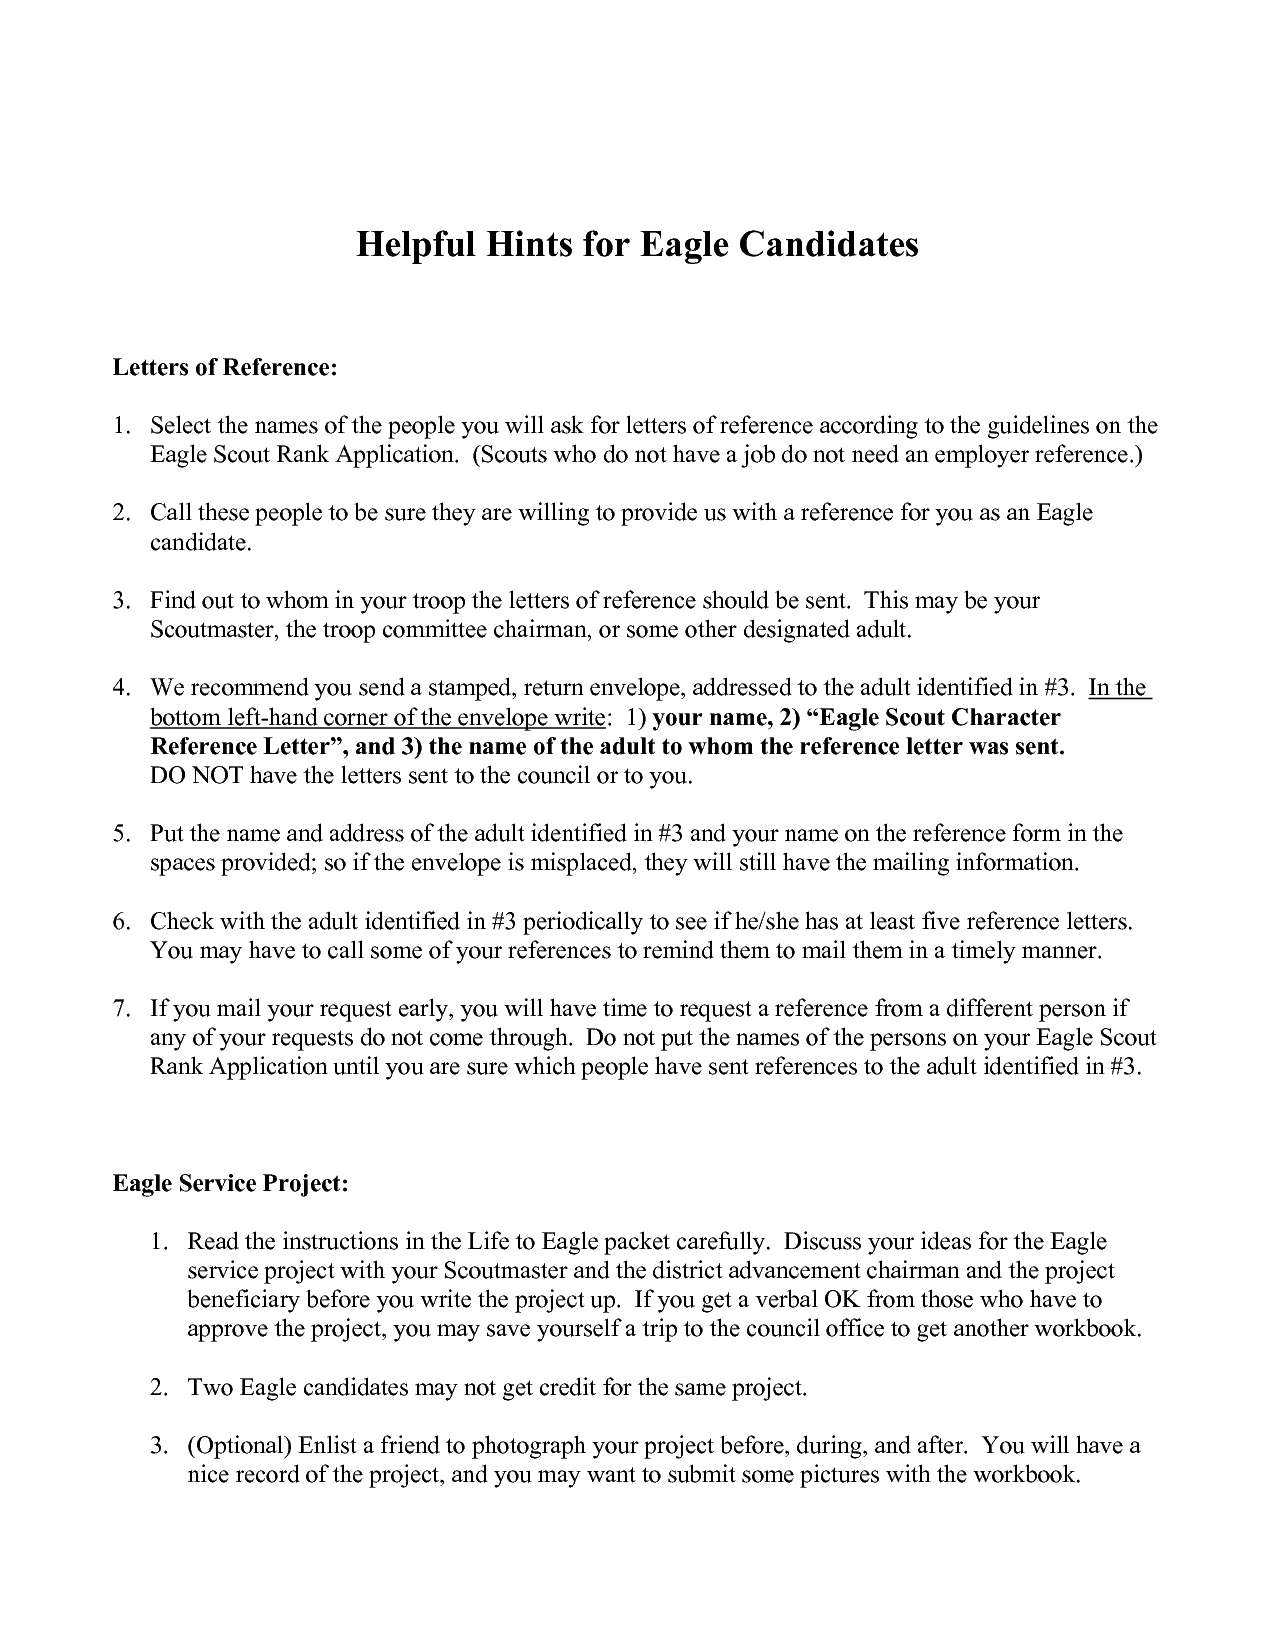 Eagle Scout Reference Letter Example.007 Eagle Scout Reference Letter Example Thatsnotus